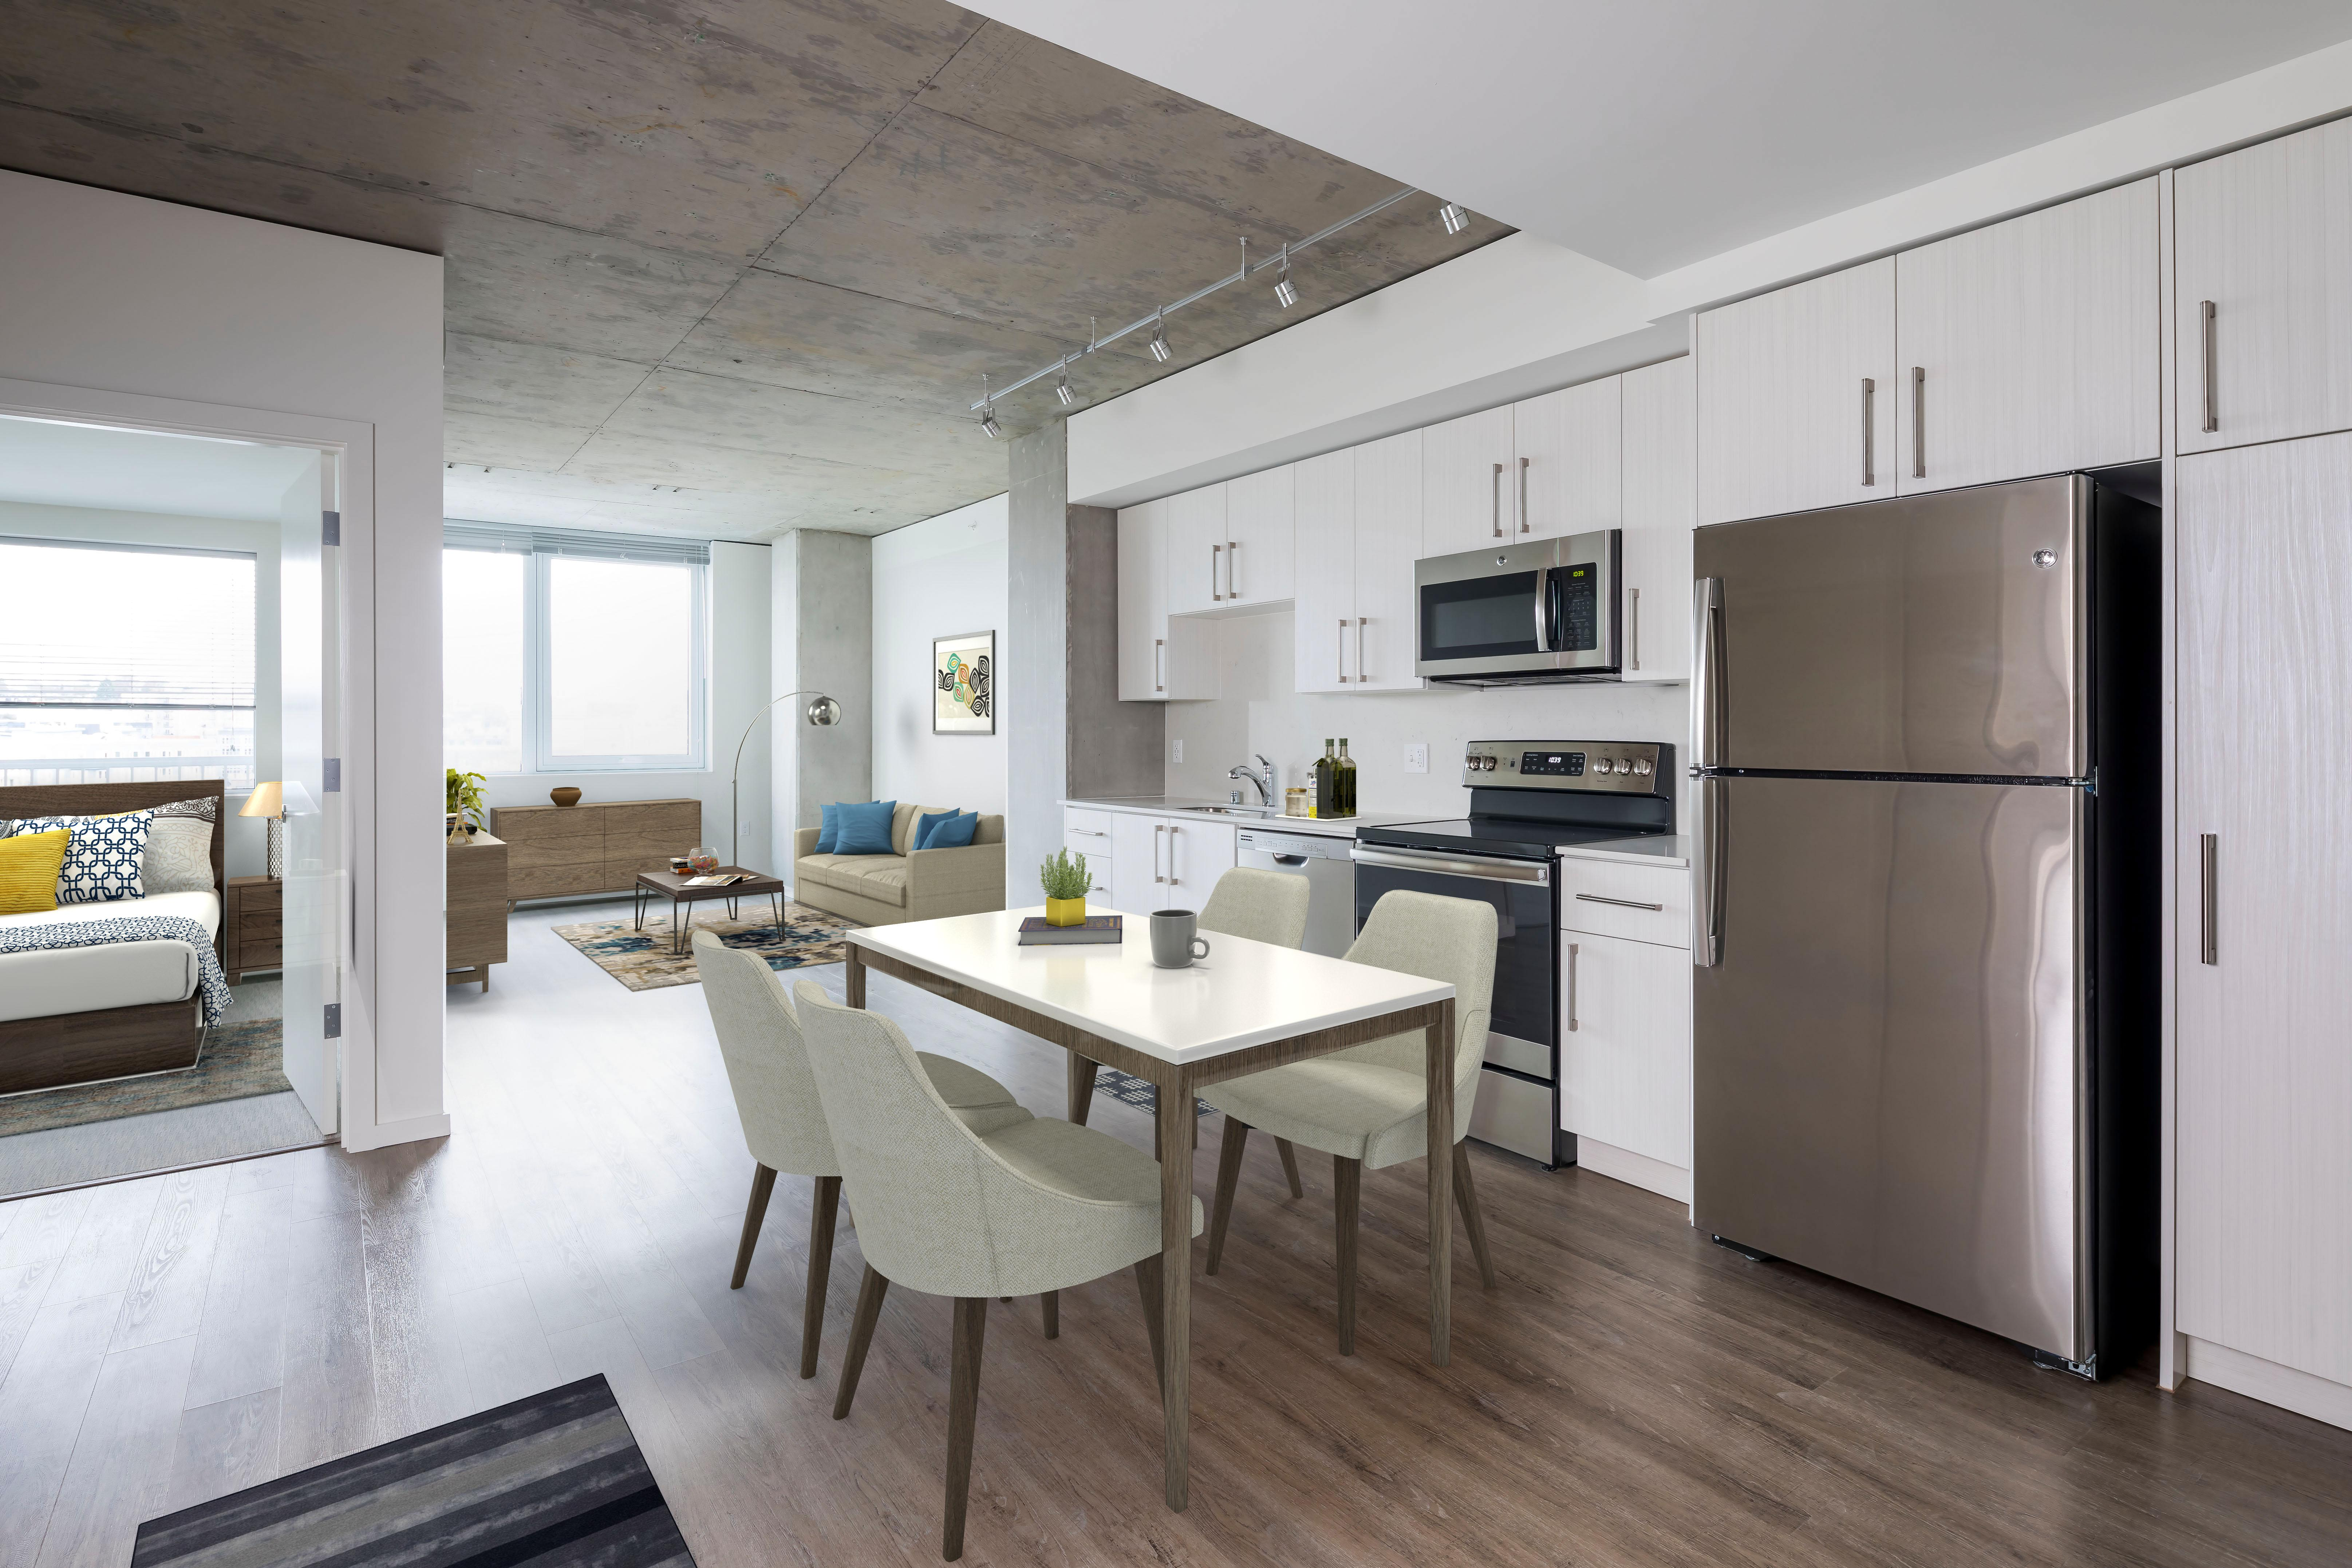 The Danforth kitchens feature cabinetry in warm wood or cool gray –a perfect complement to the Carrera style quartz countertops and backsplash.{ }